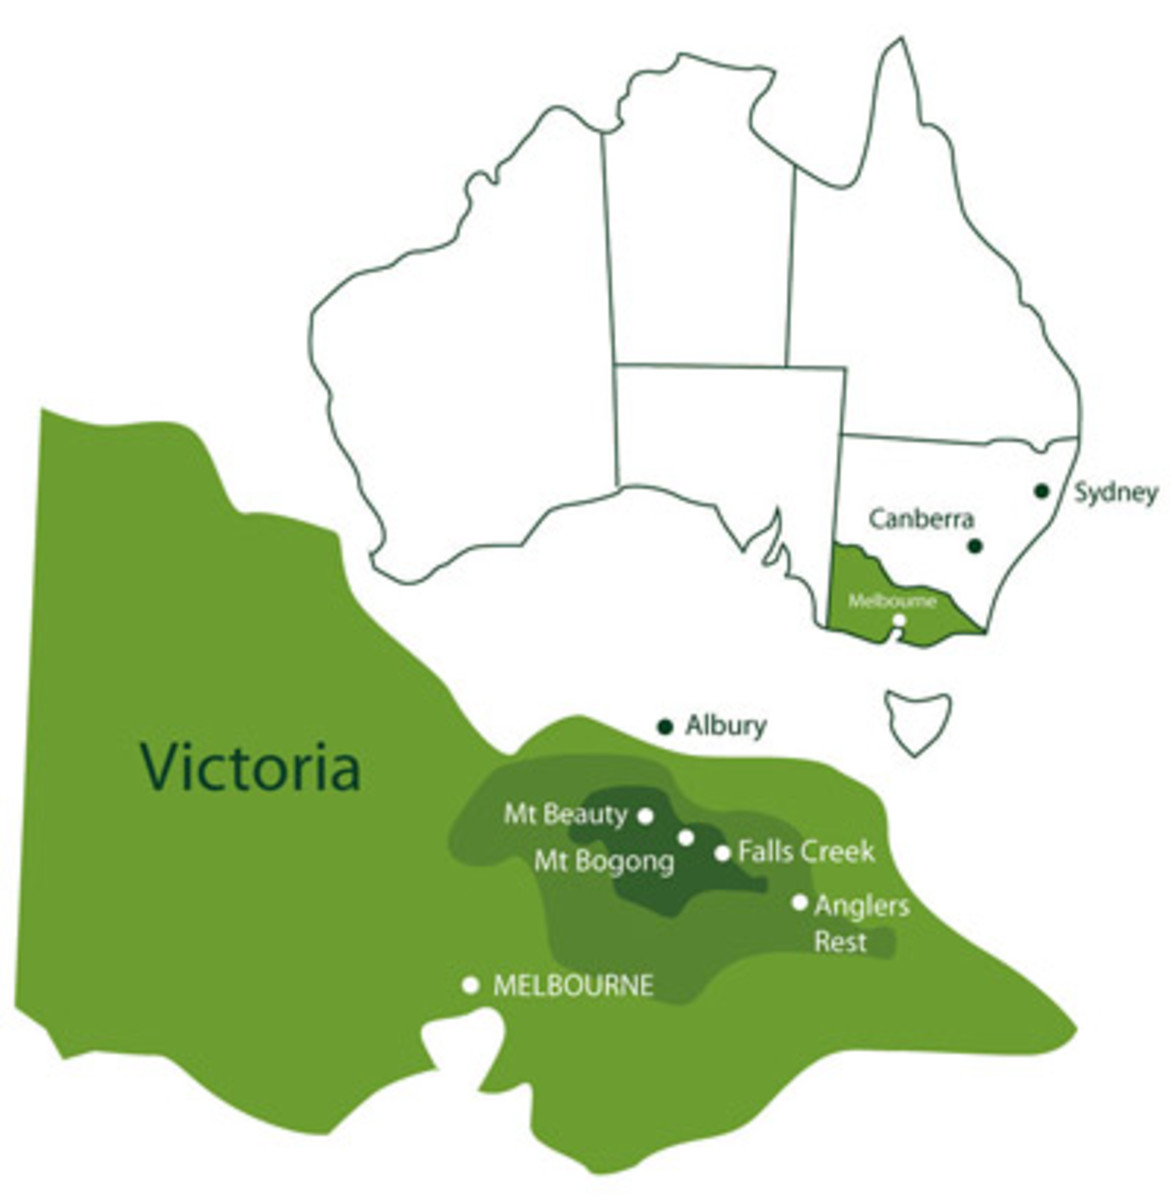 Map of Victorian Alps region